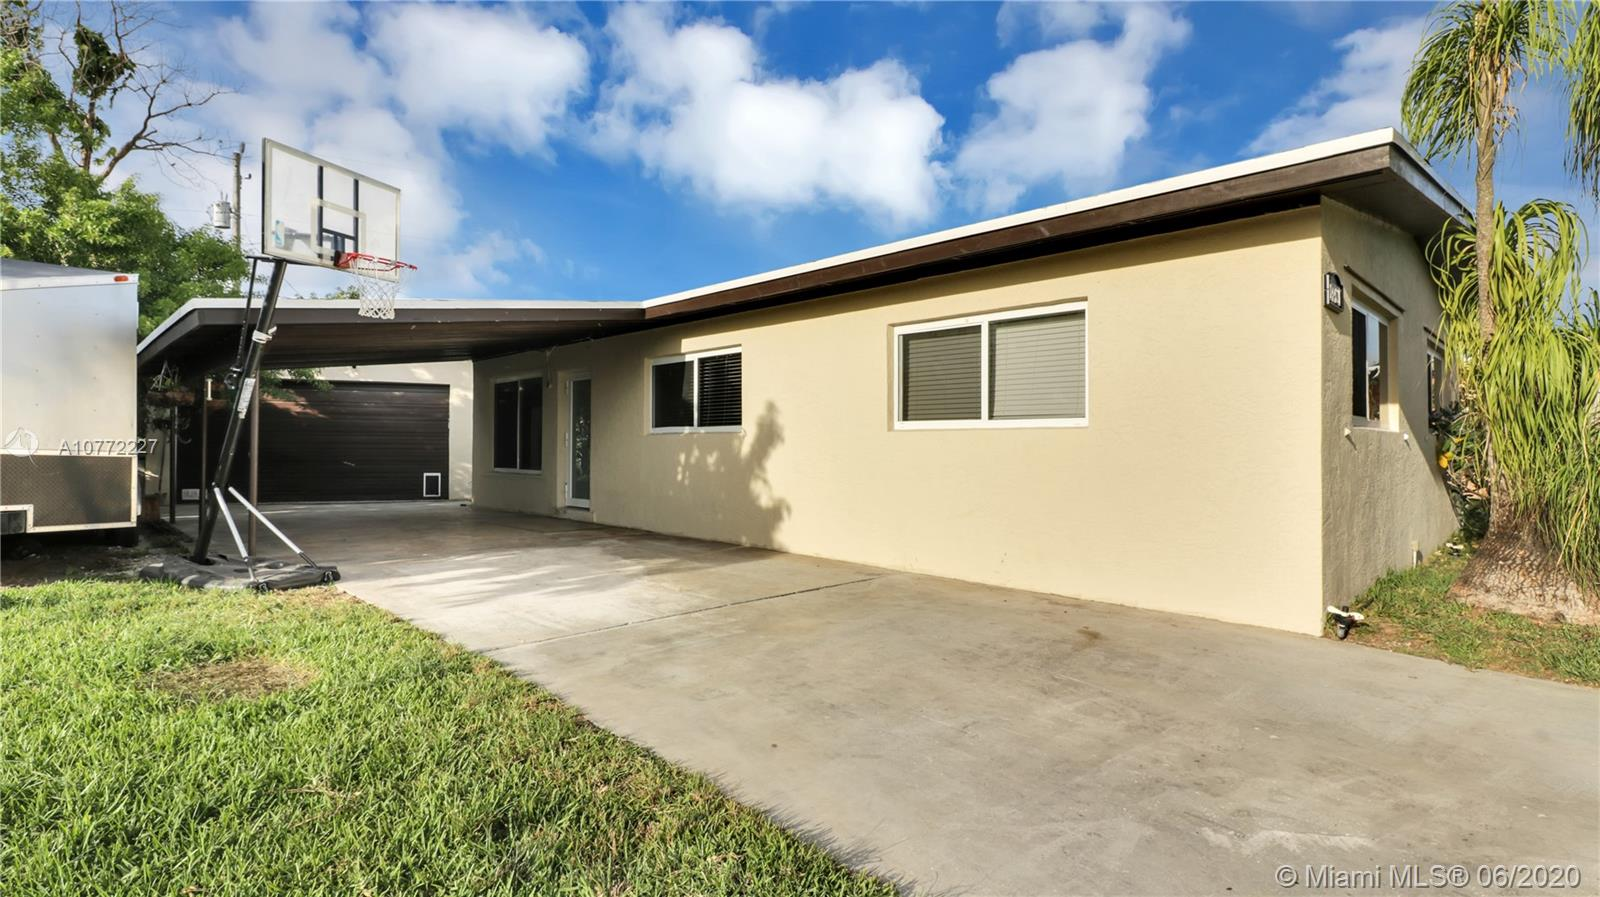 14481 SW 289th Ter Property Photo - Homestead, FL real estate listing